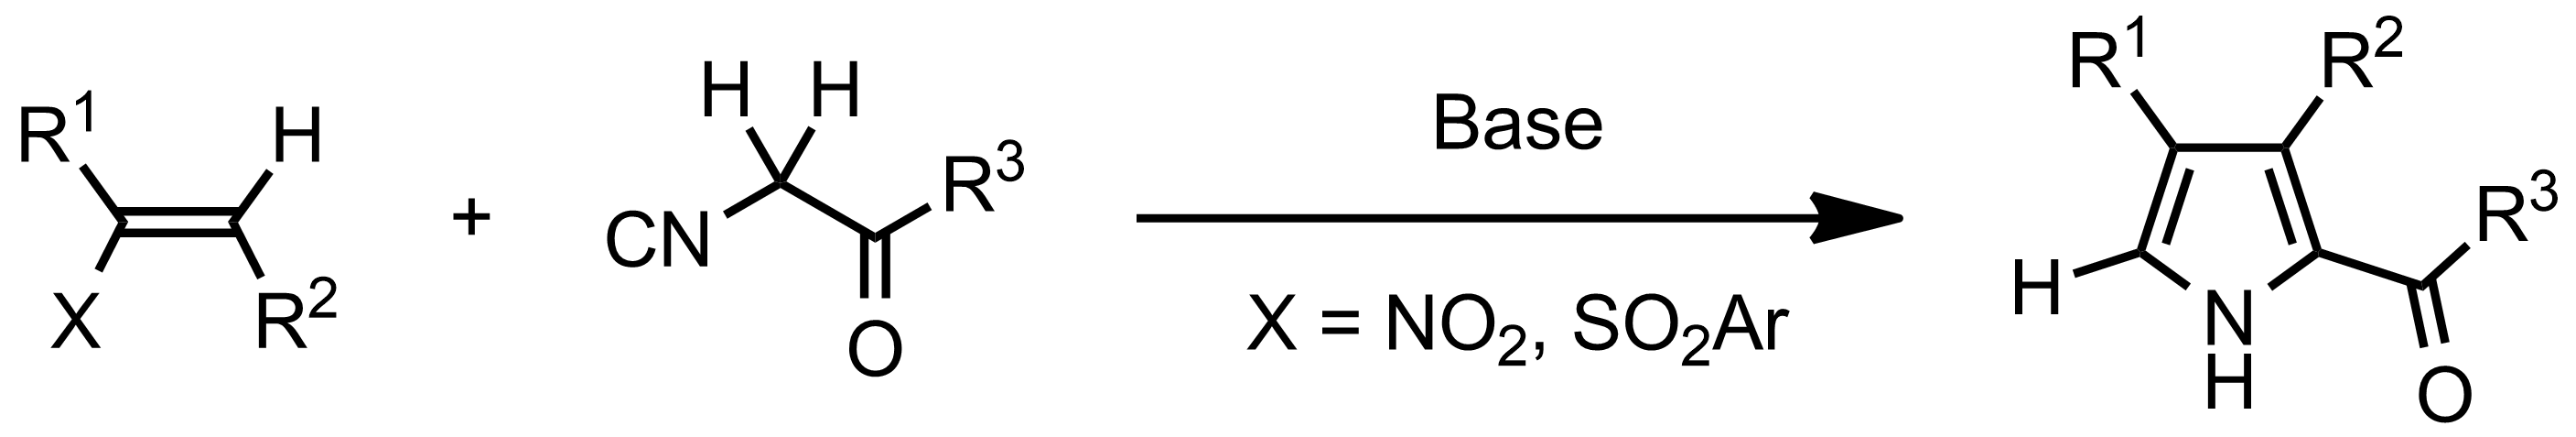 Schematic representation of the Barton-Zard Reaction.